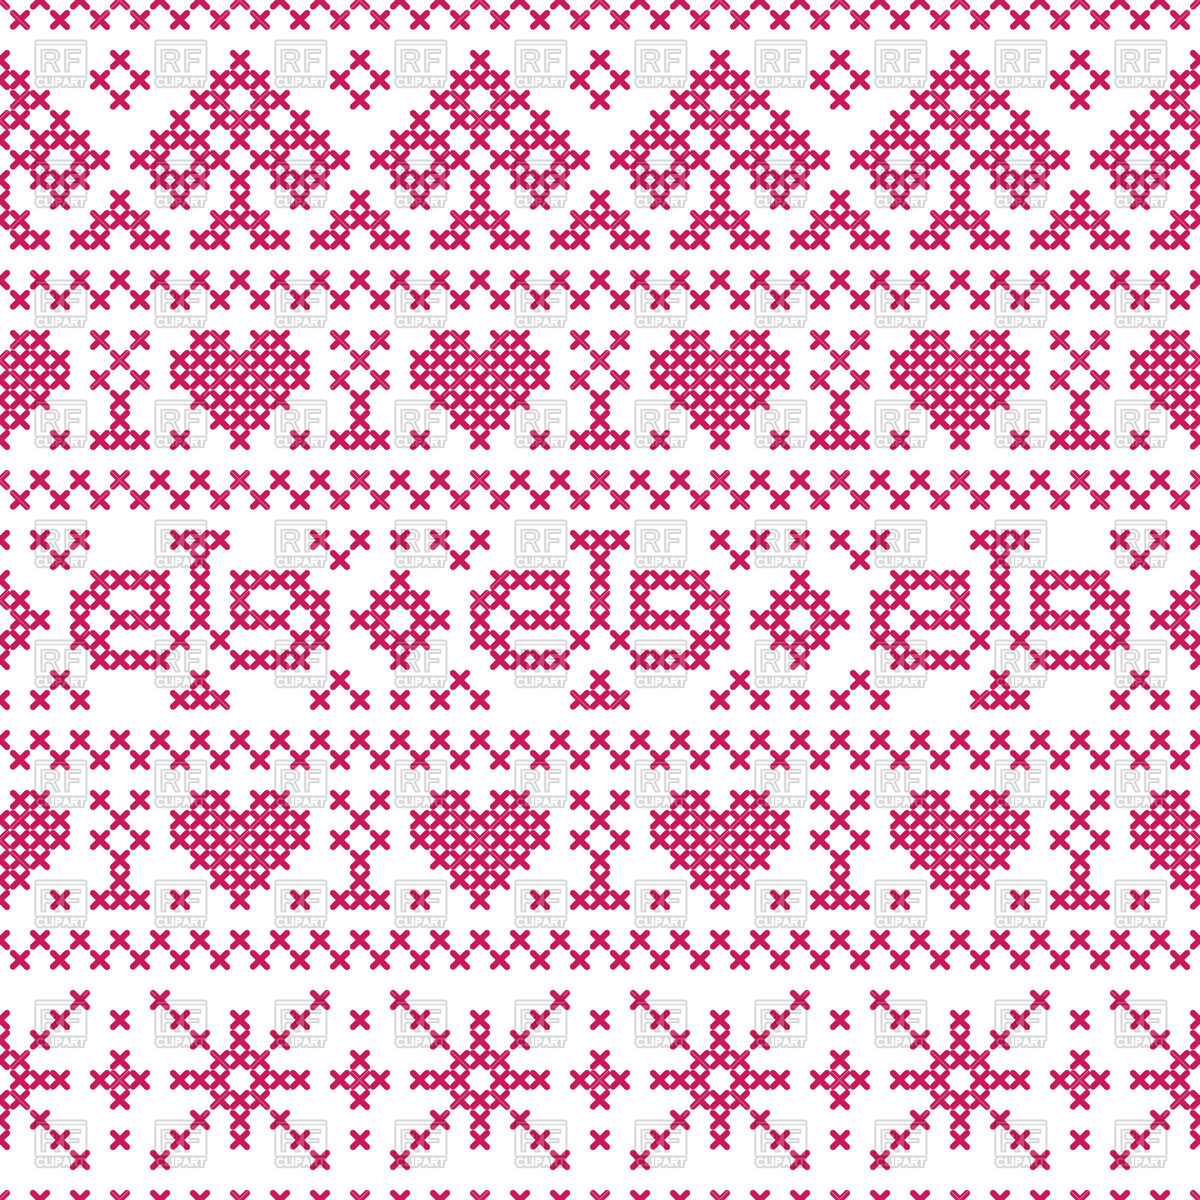 1200x1200 Seamless Pattern In Embroidery Cross Stitch Style Vector Image